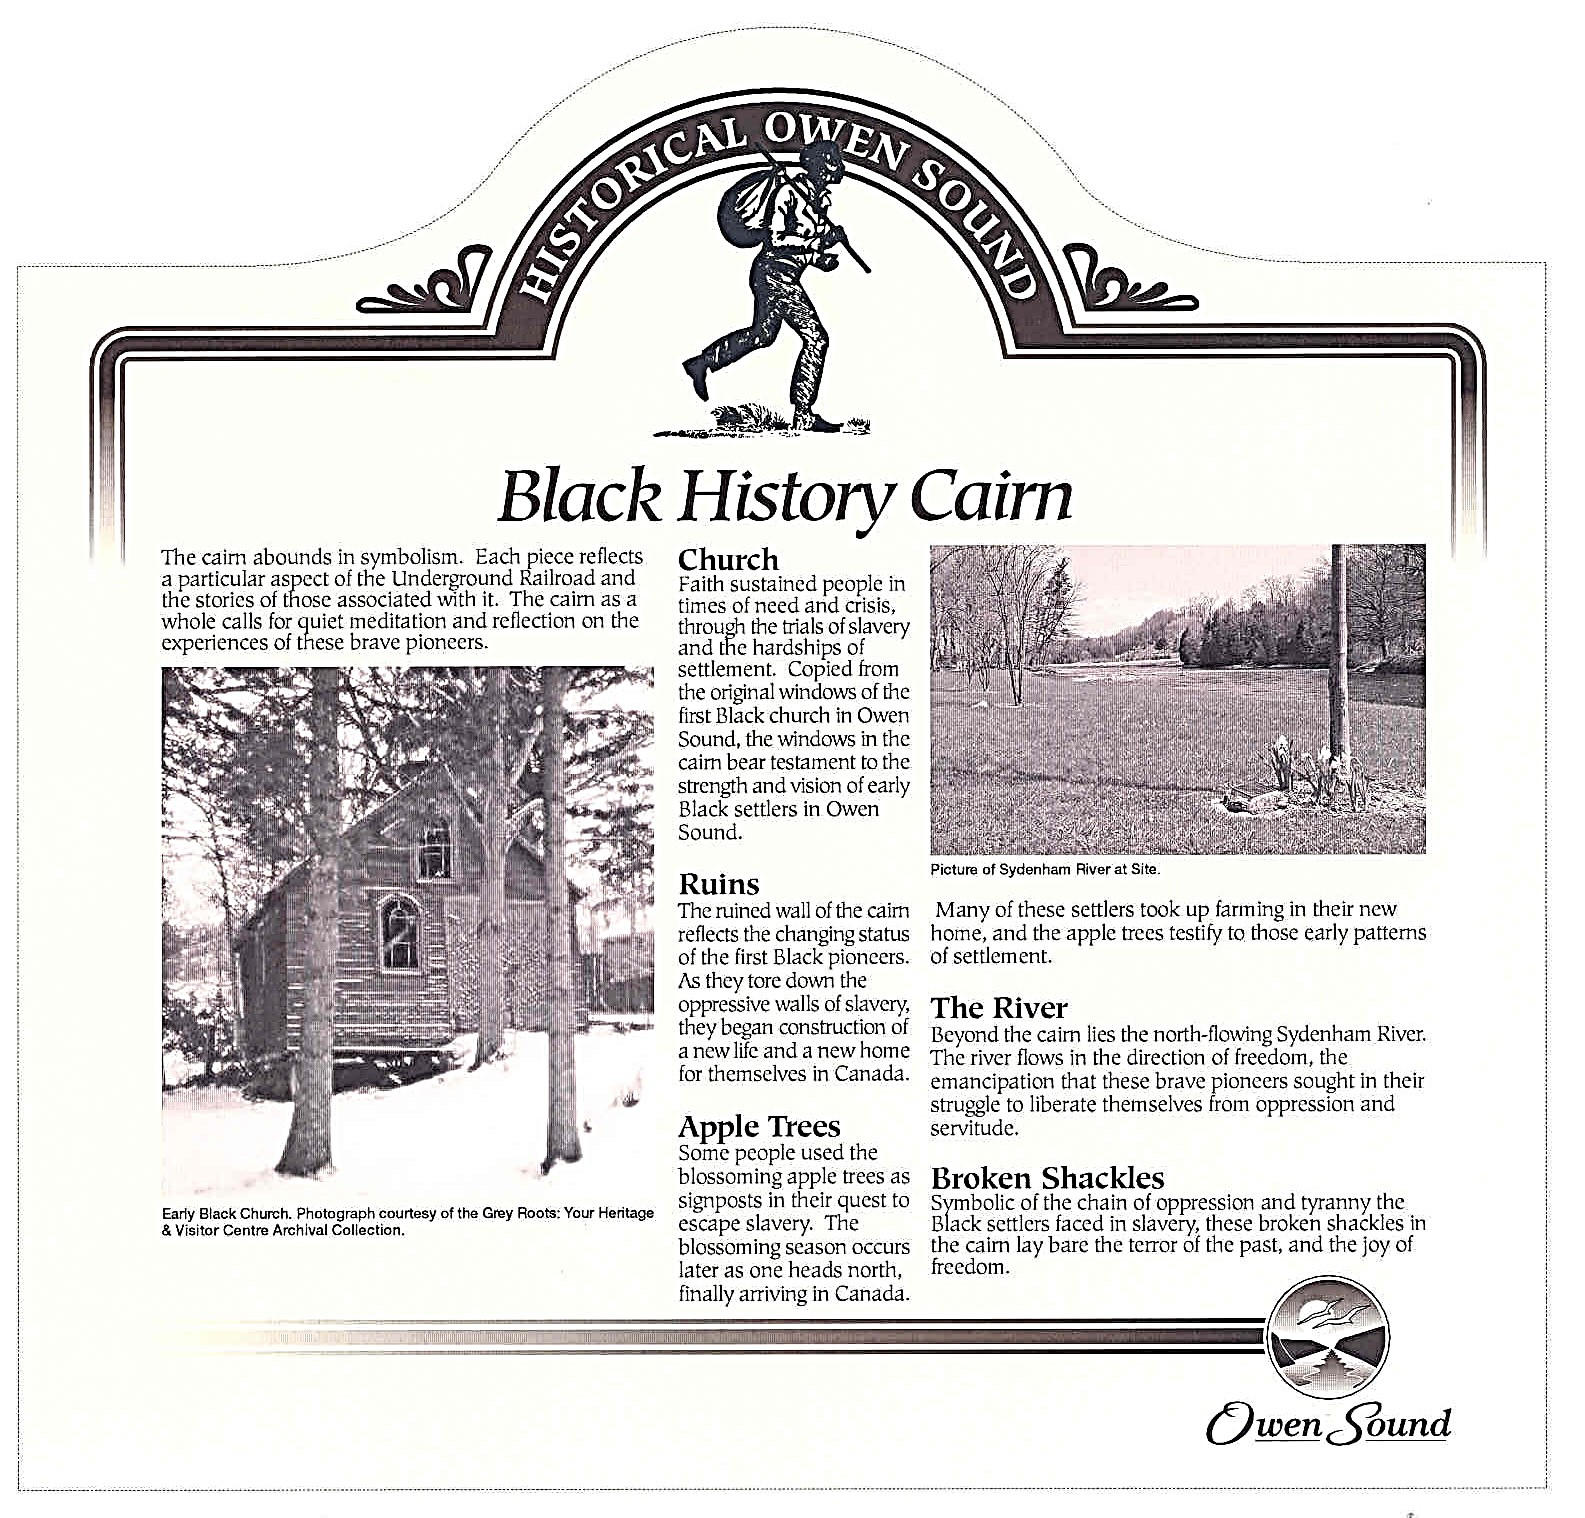 2004_BlackHistoryCairn1plaque_sharp.jpg